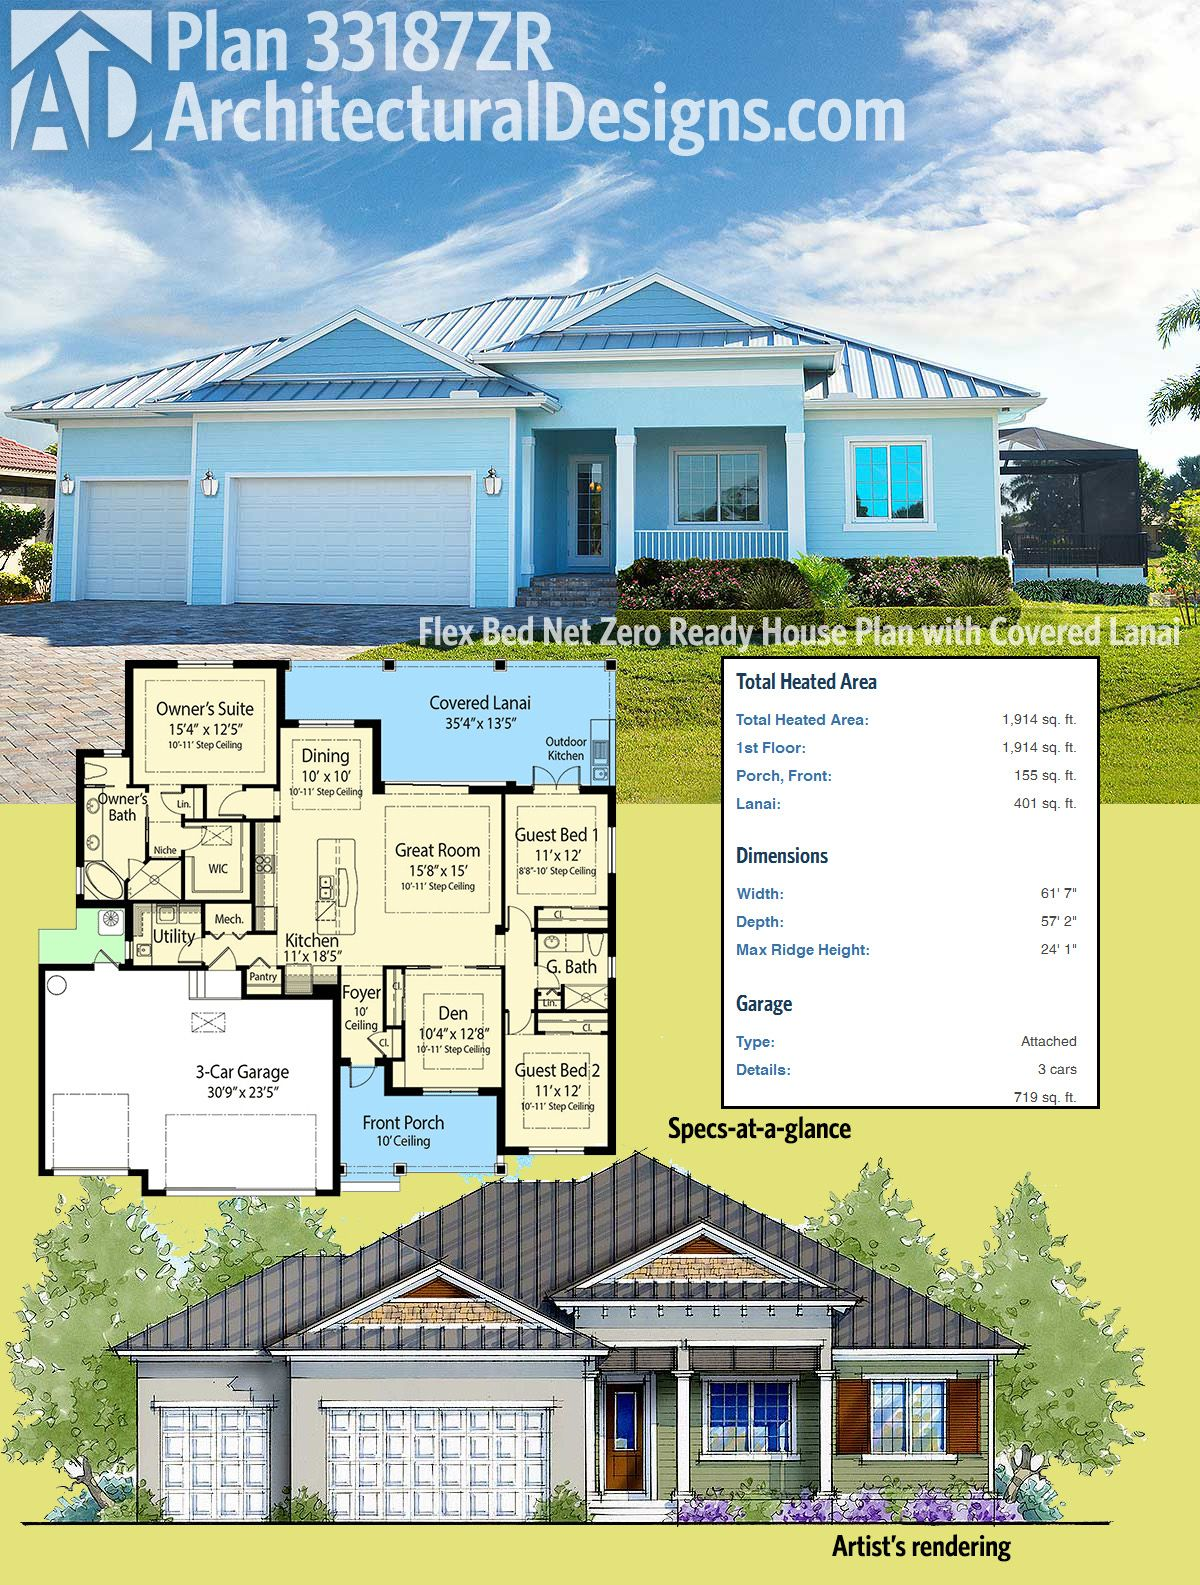 Plan 33187zr Flex Bed Net Zero Ready House Plan With Covered Lanai House Plans Architectural Design House Plans House